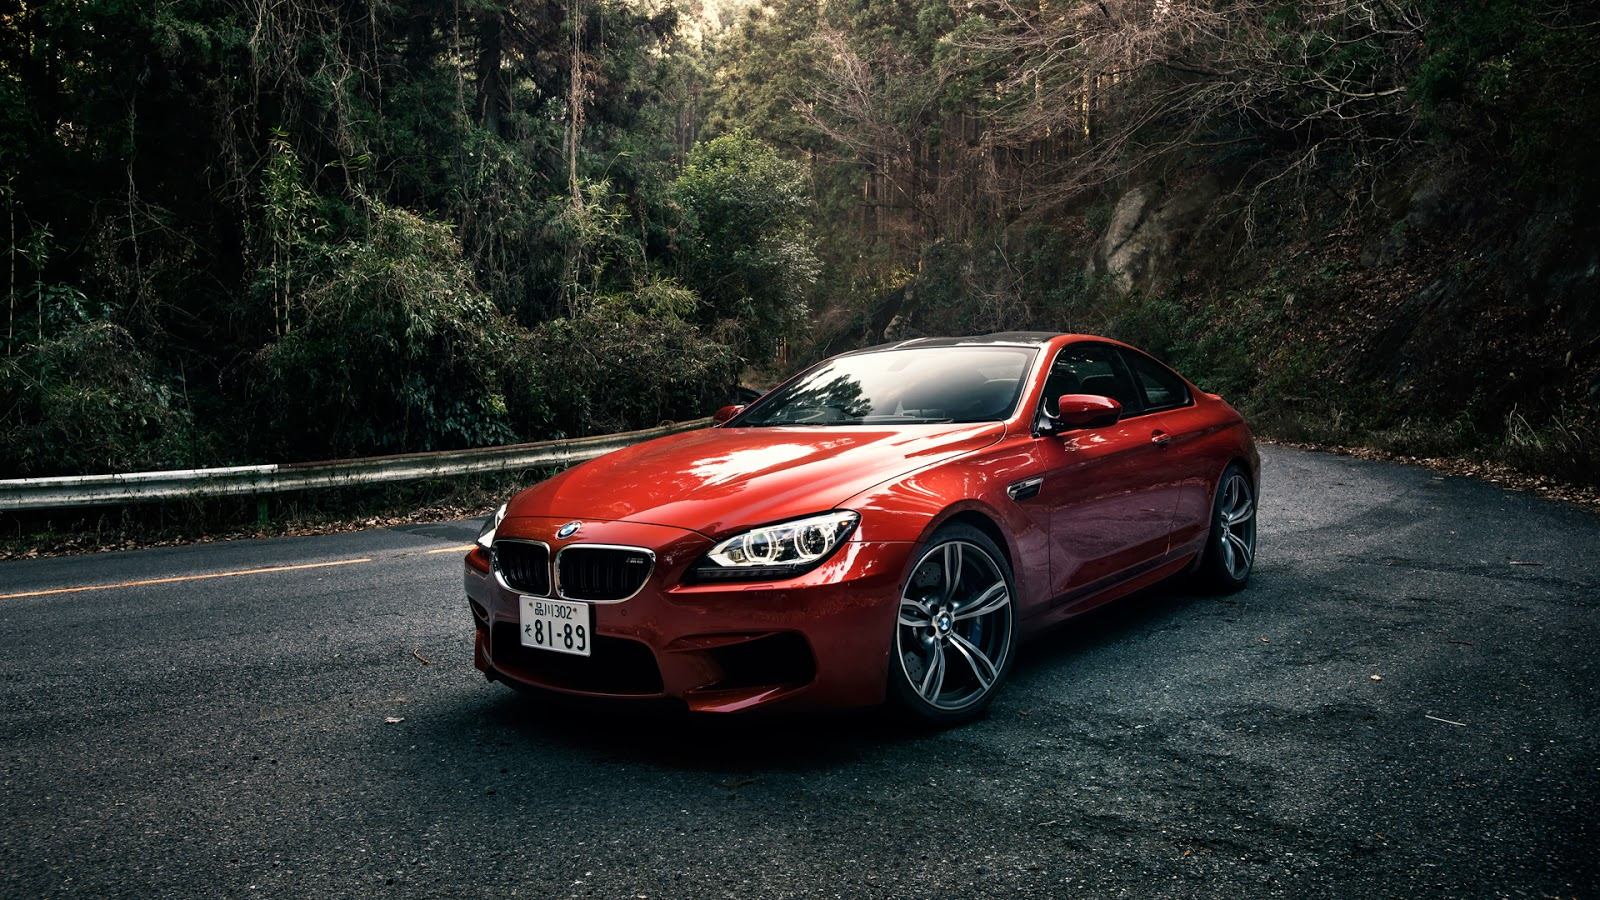 Title: HD BMW Car Wallpapers 1080p